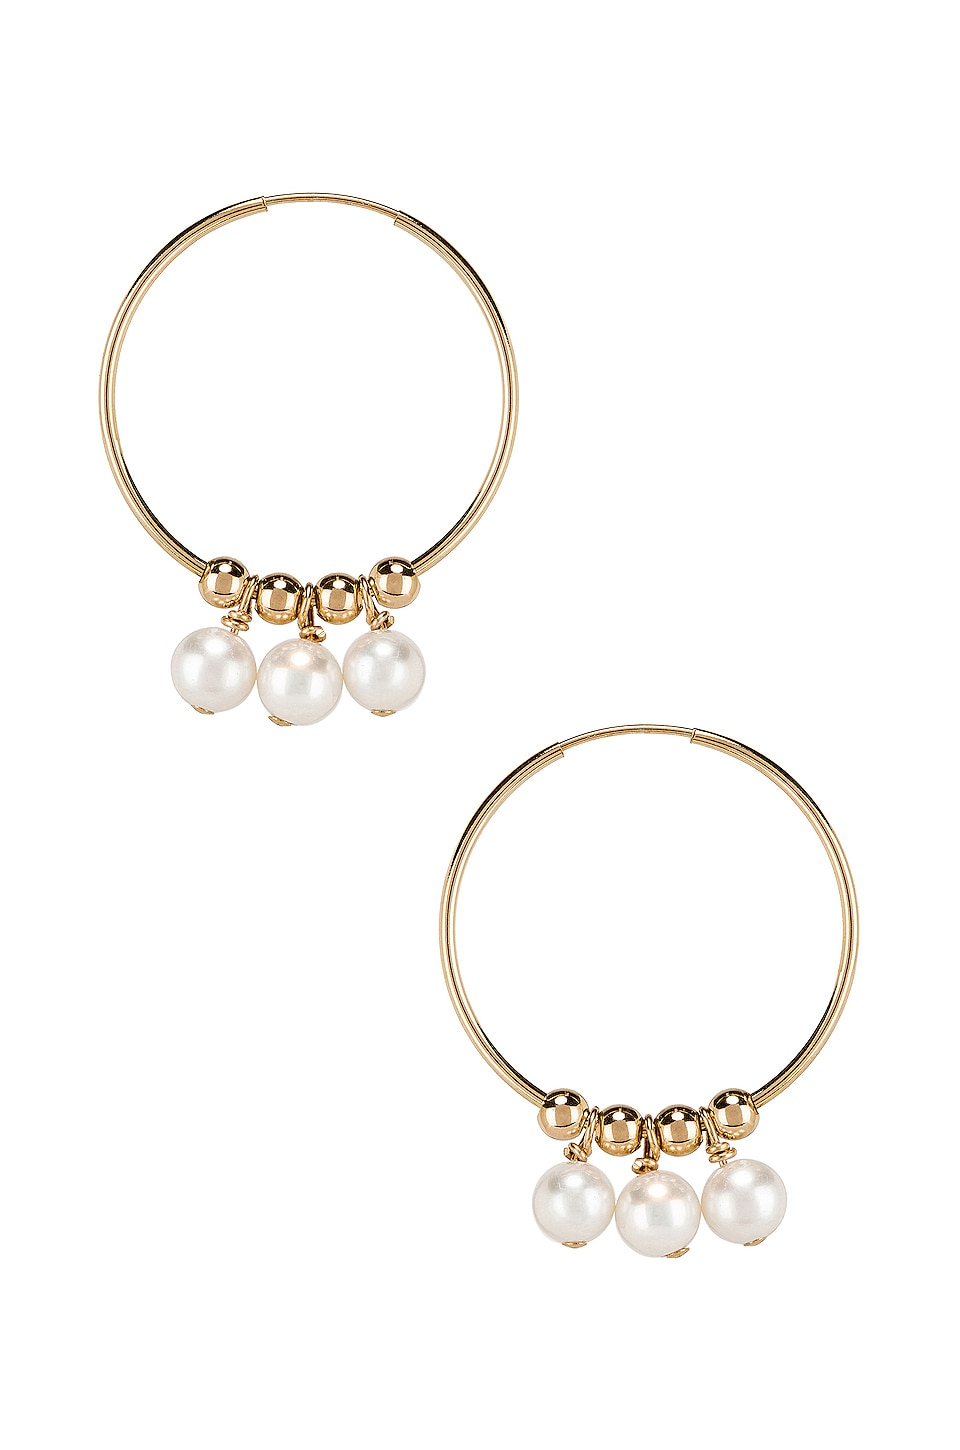 Paradigm Verona Hoops in Gold